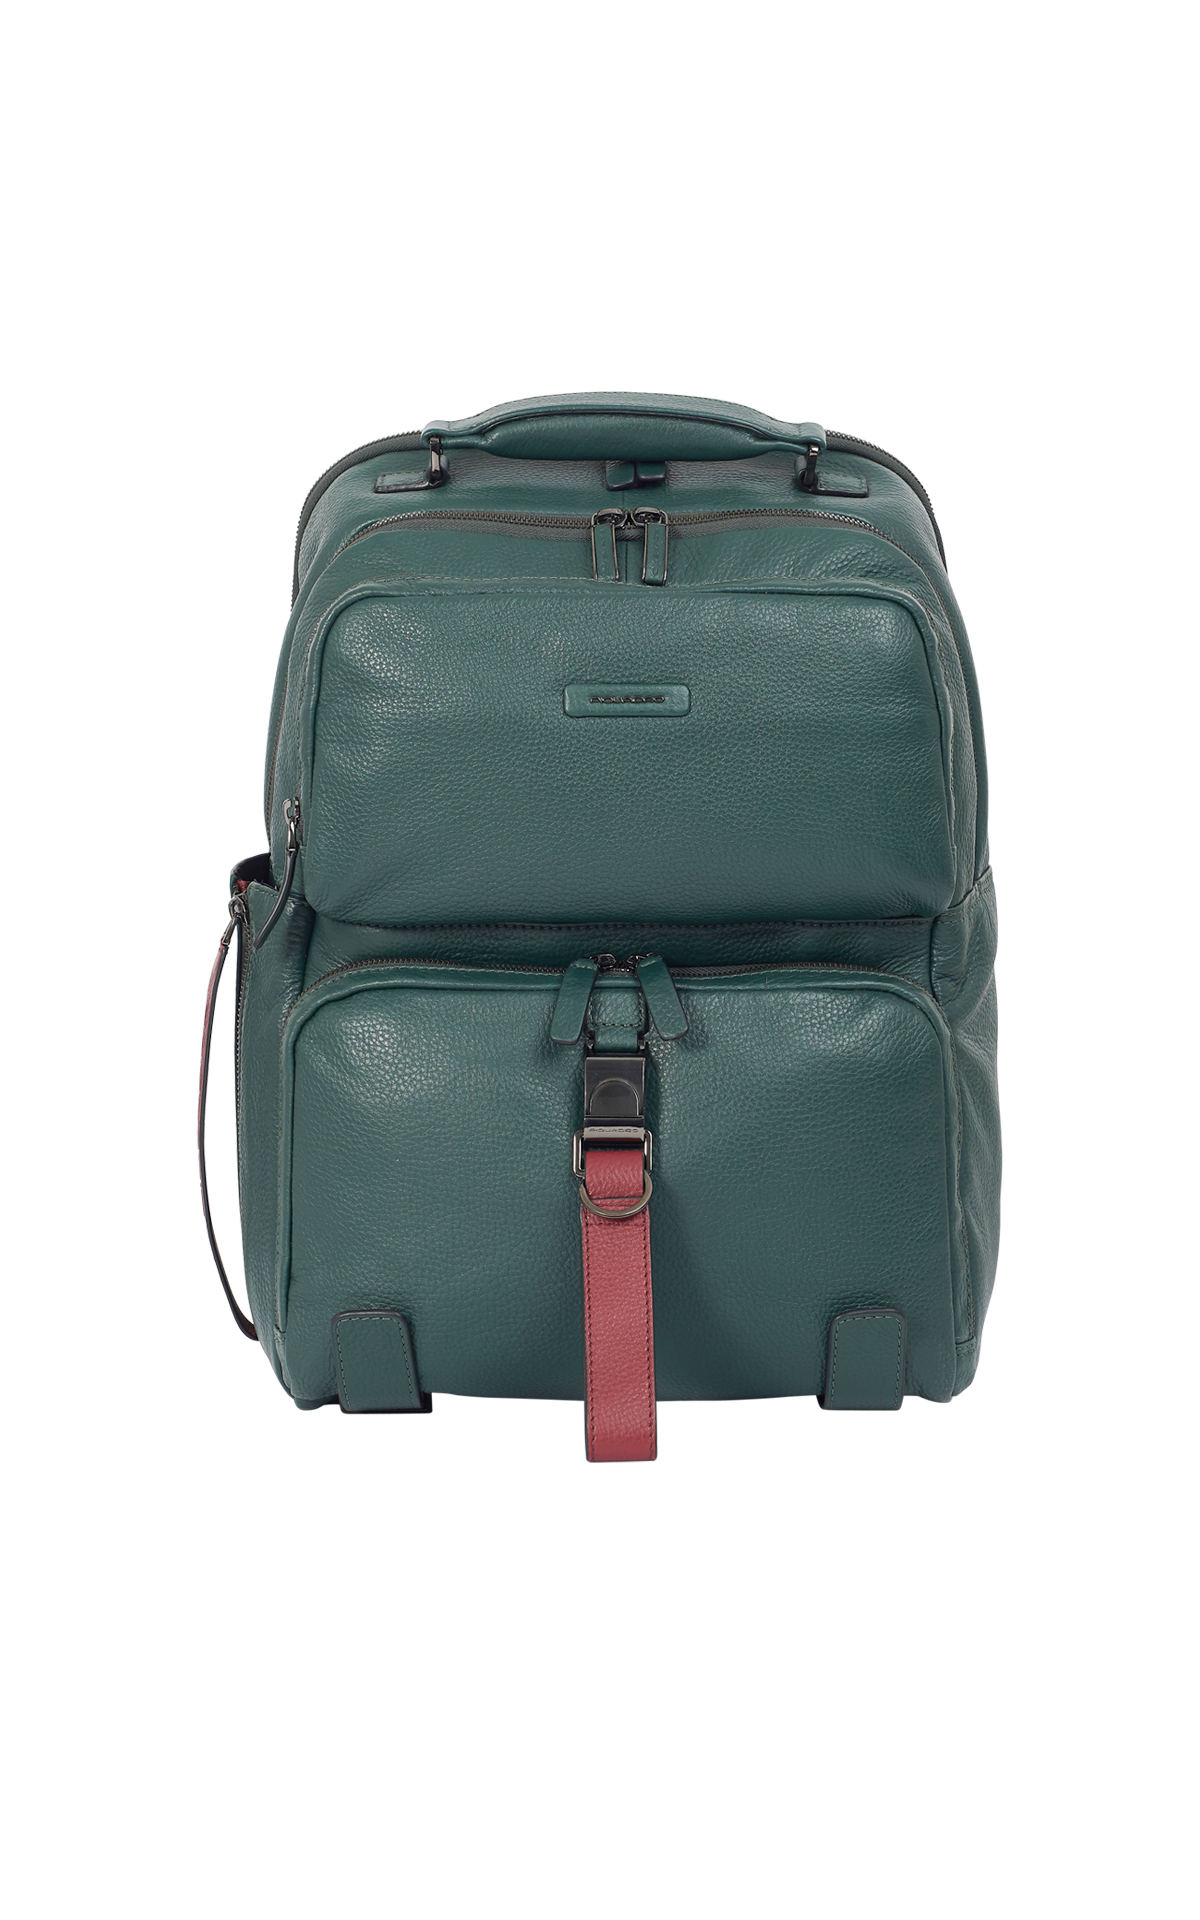 Green backpack Piquadro